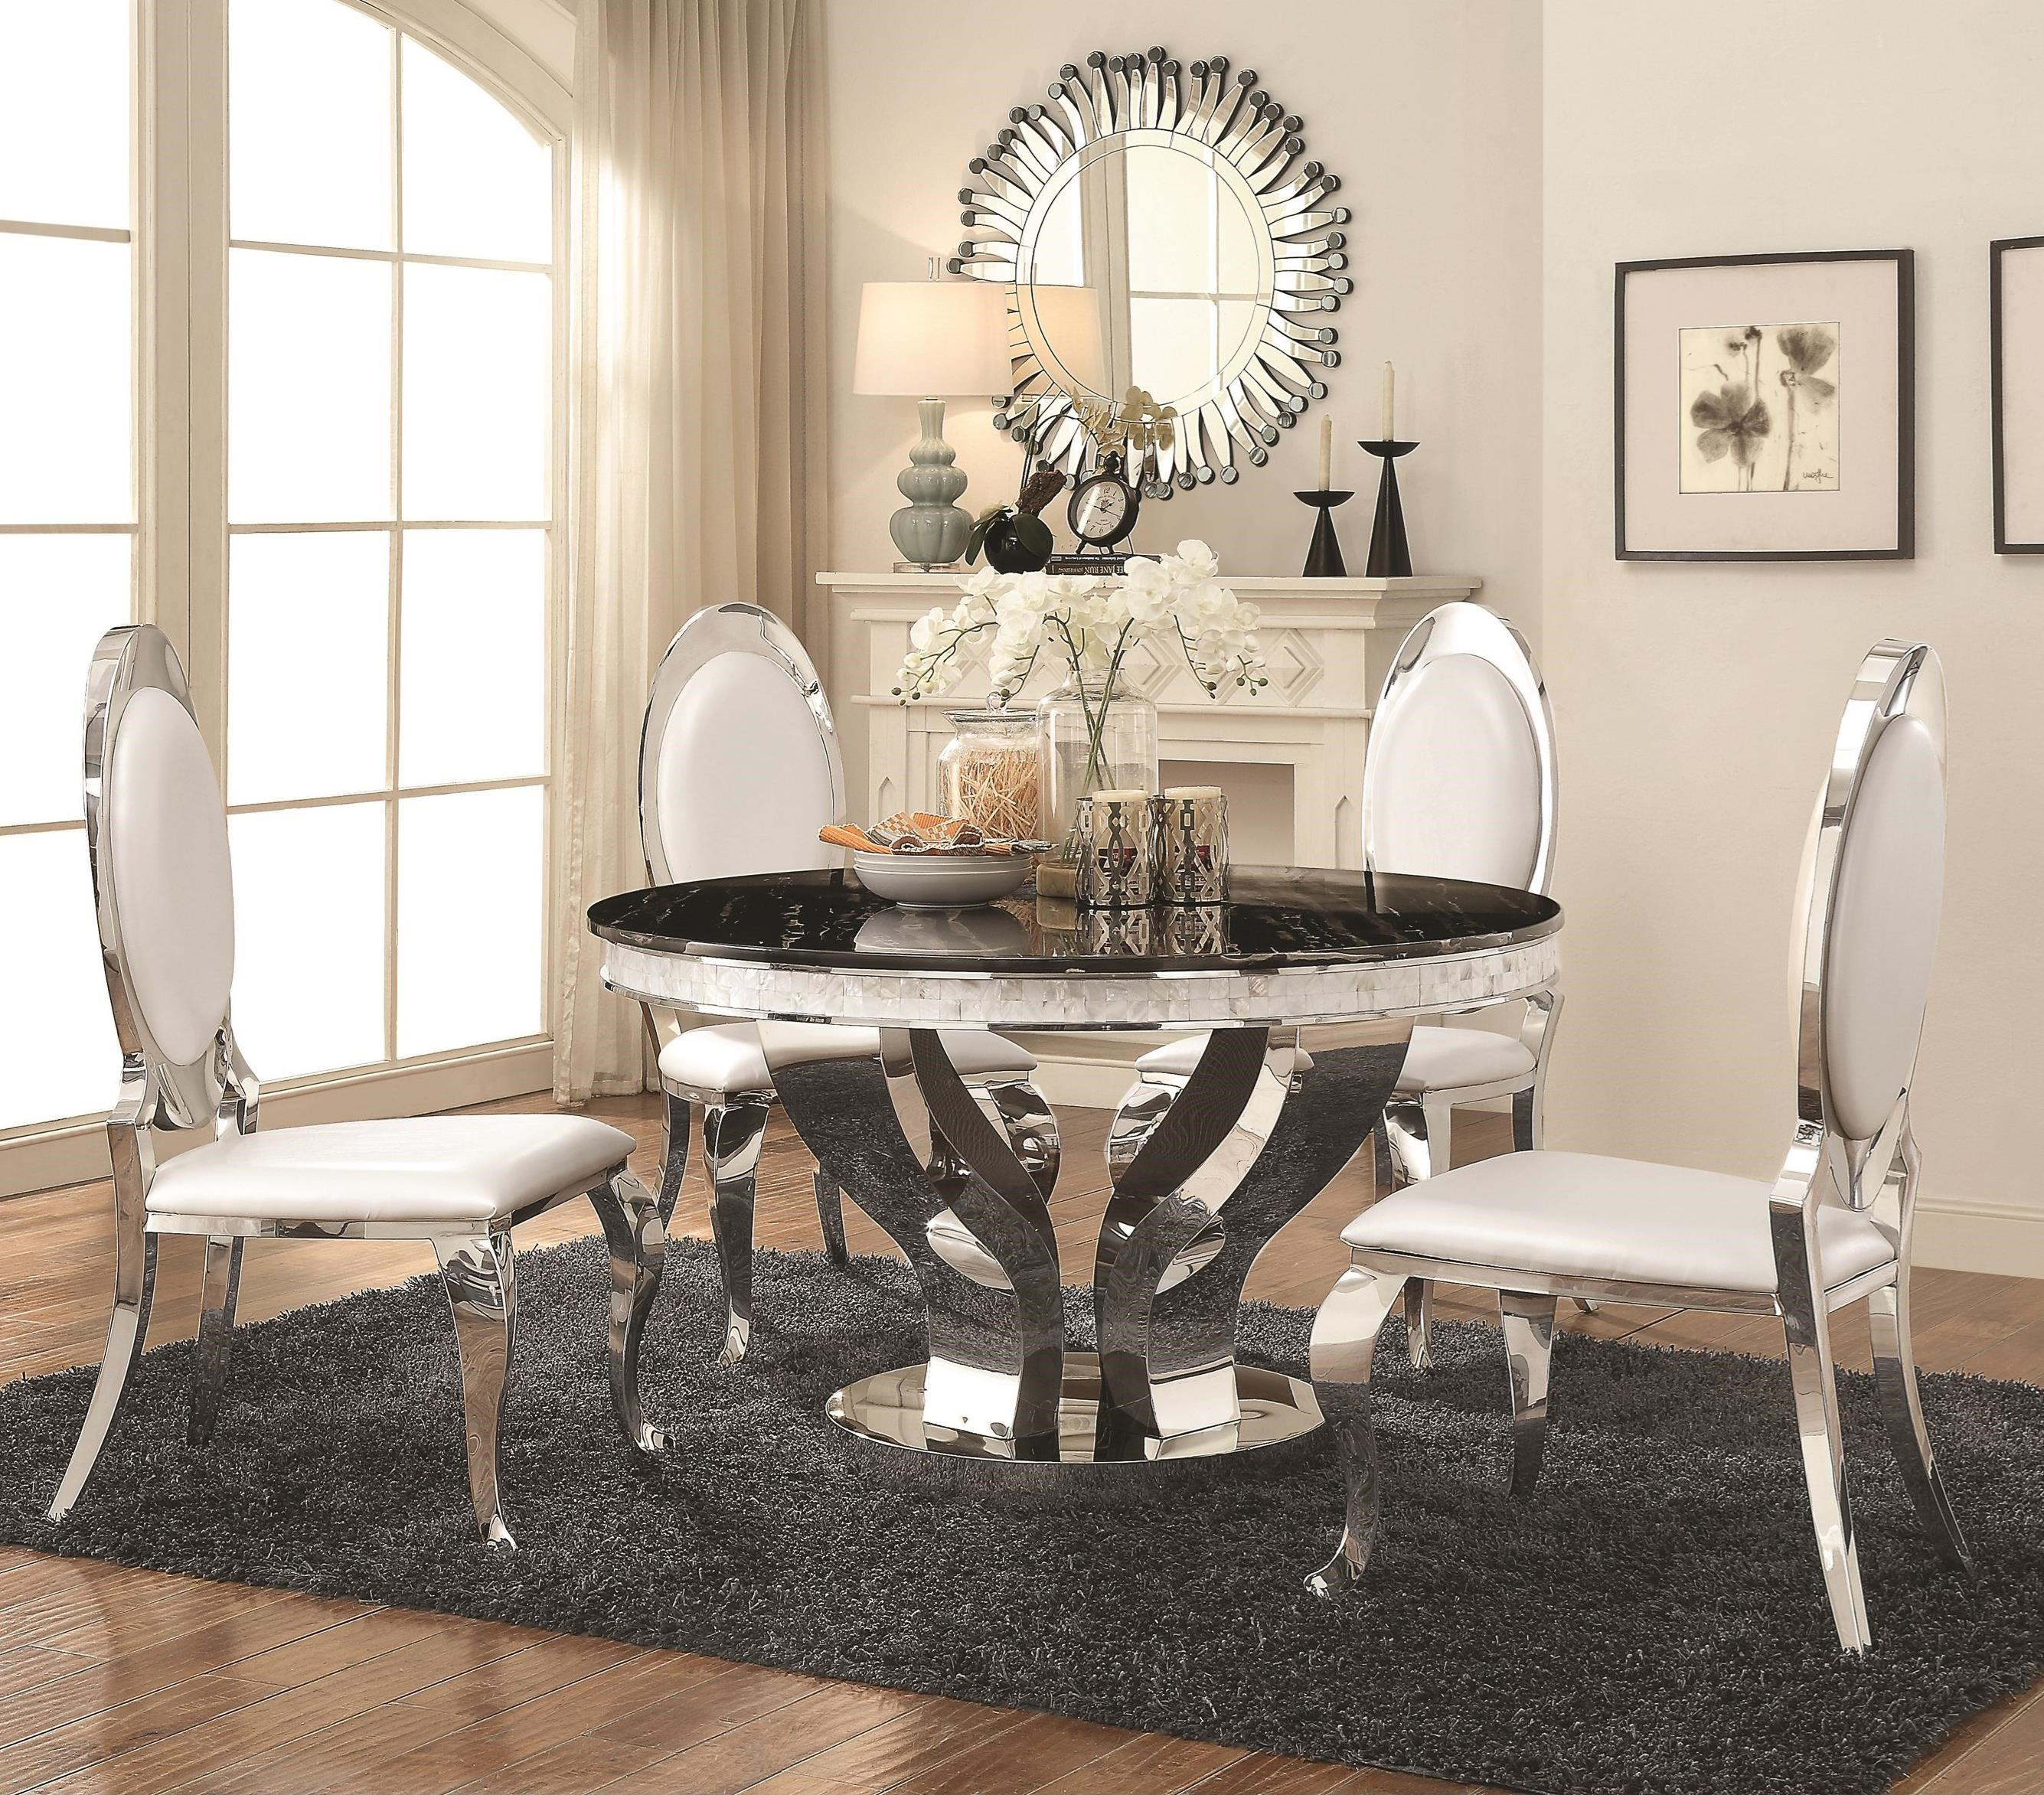 stainless steel kitchen table and chairs. Coaster Anchorage5 Piece Dining Table Set Stainless Steel Kitchen And Chairs A